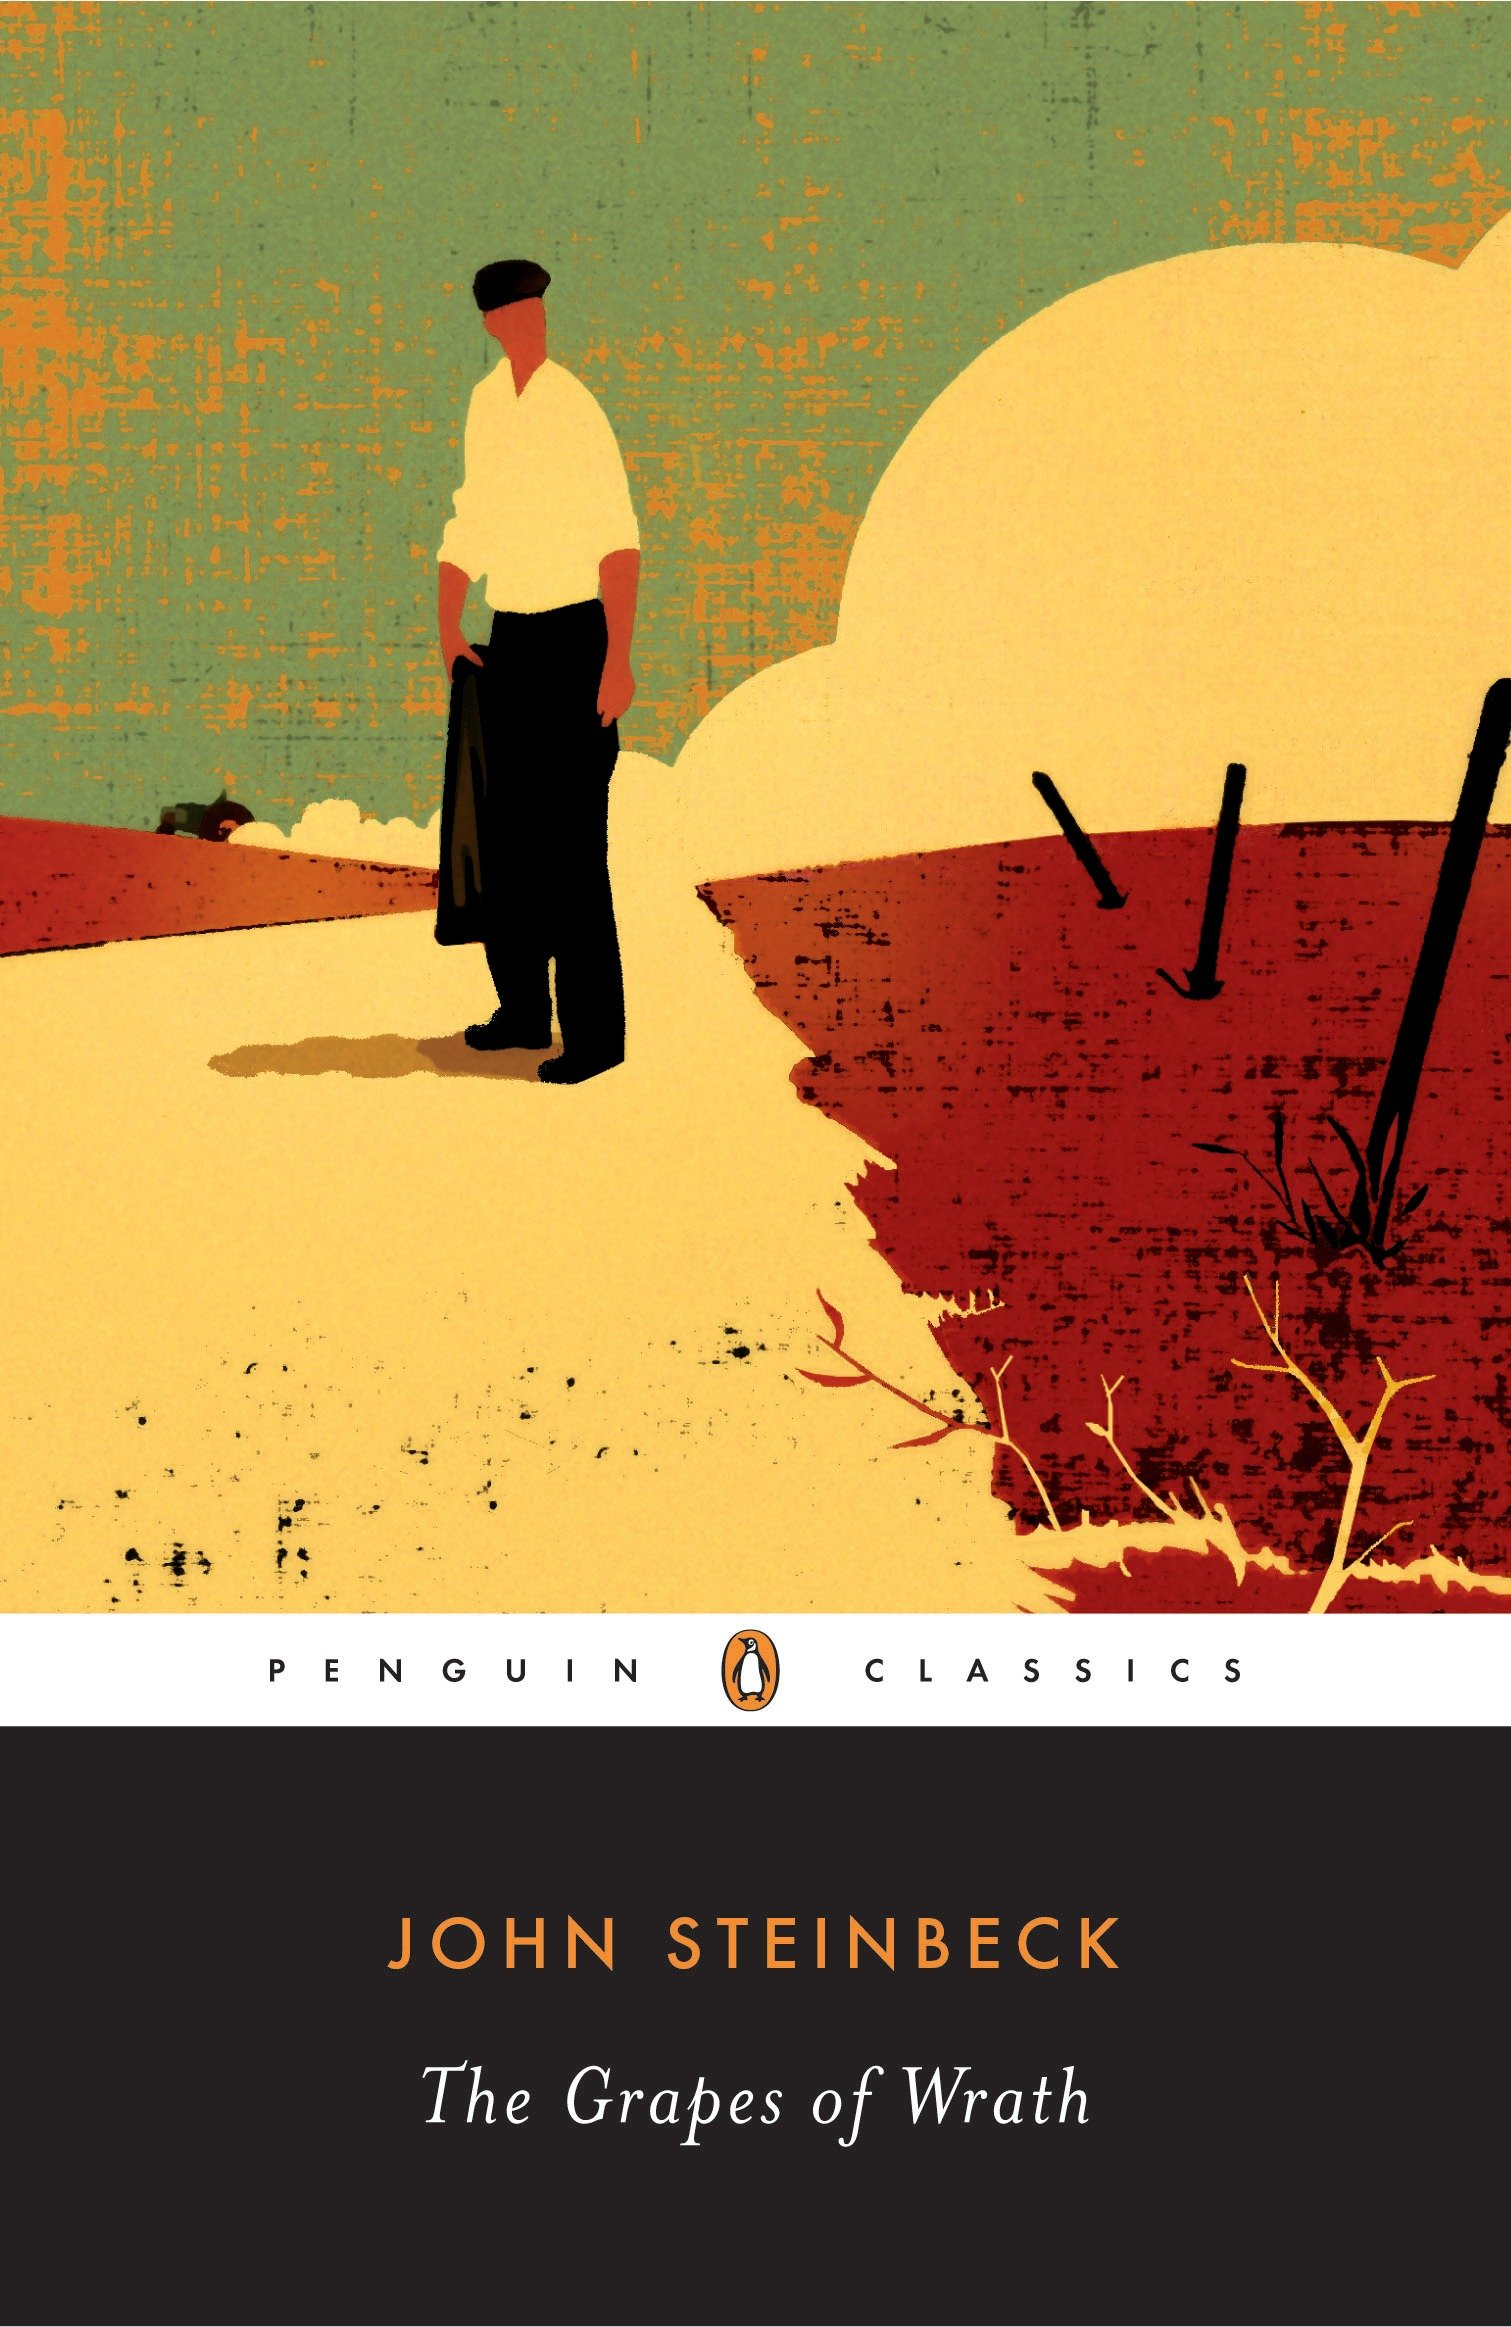 the grapes of wrath john steinbeck robert demott  the grapes of wrath john steinbeck robert demott 9780143039433 com books